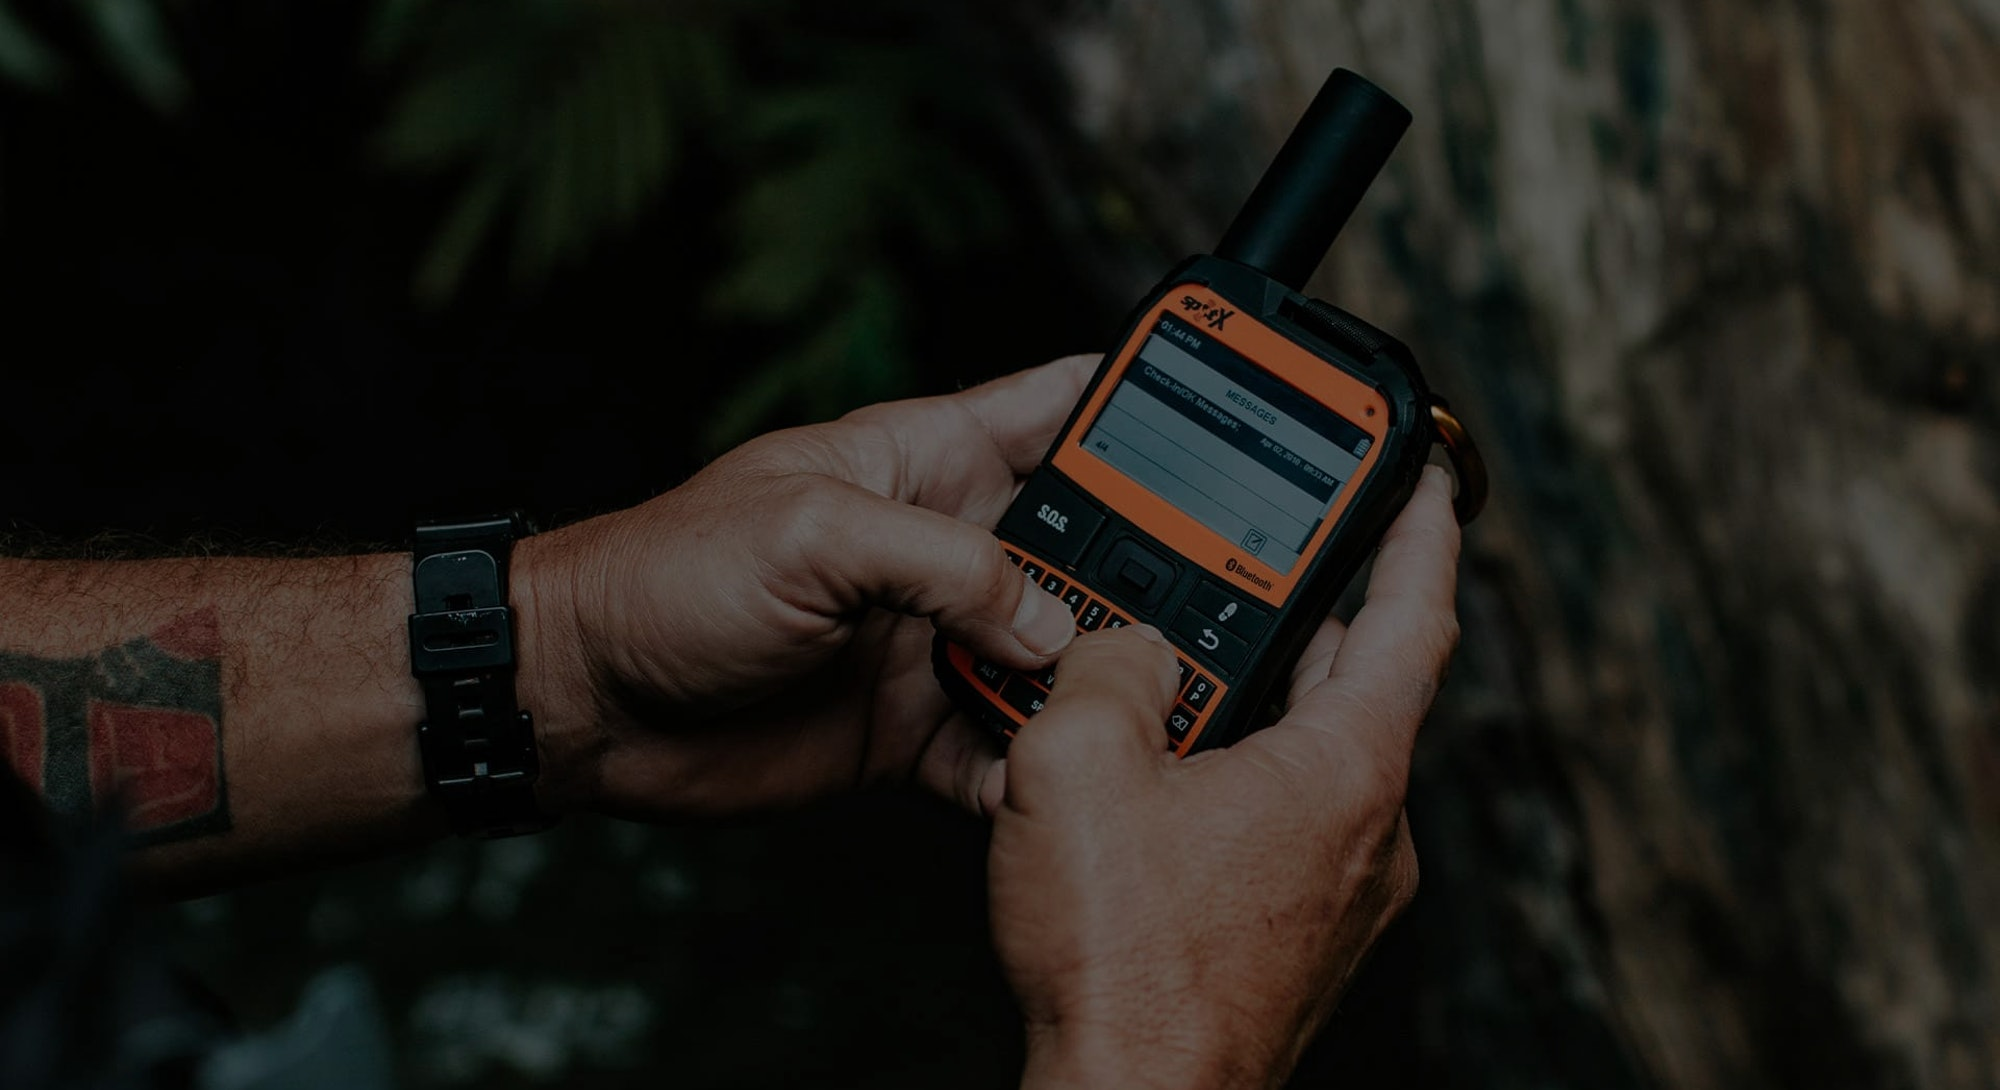 The Spot X Satellite phone. Sat phones. Dongles. Hiking. Outdoors. iPhone 13.